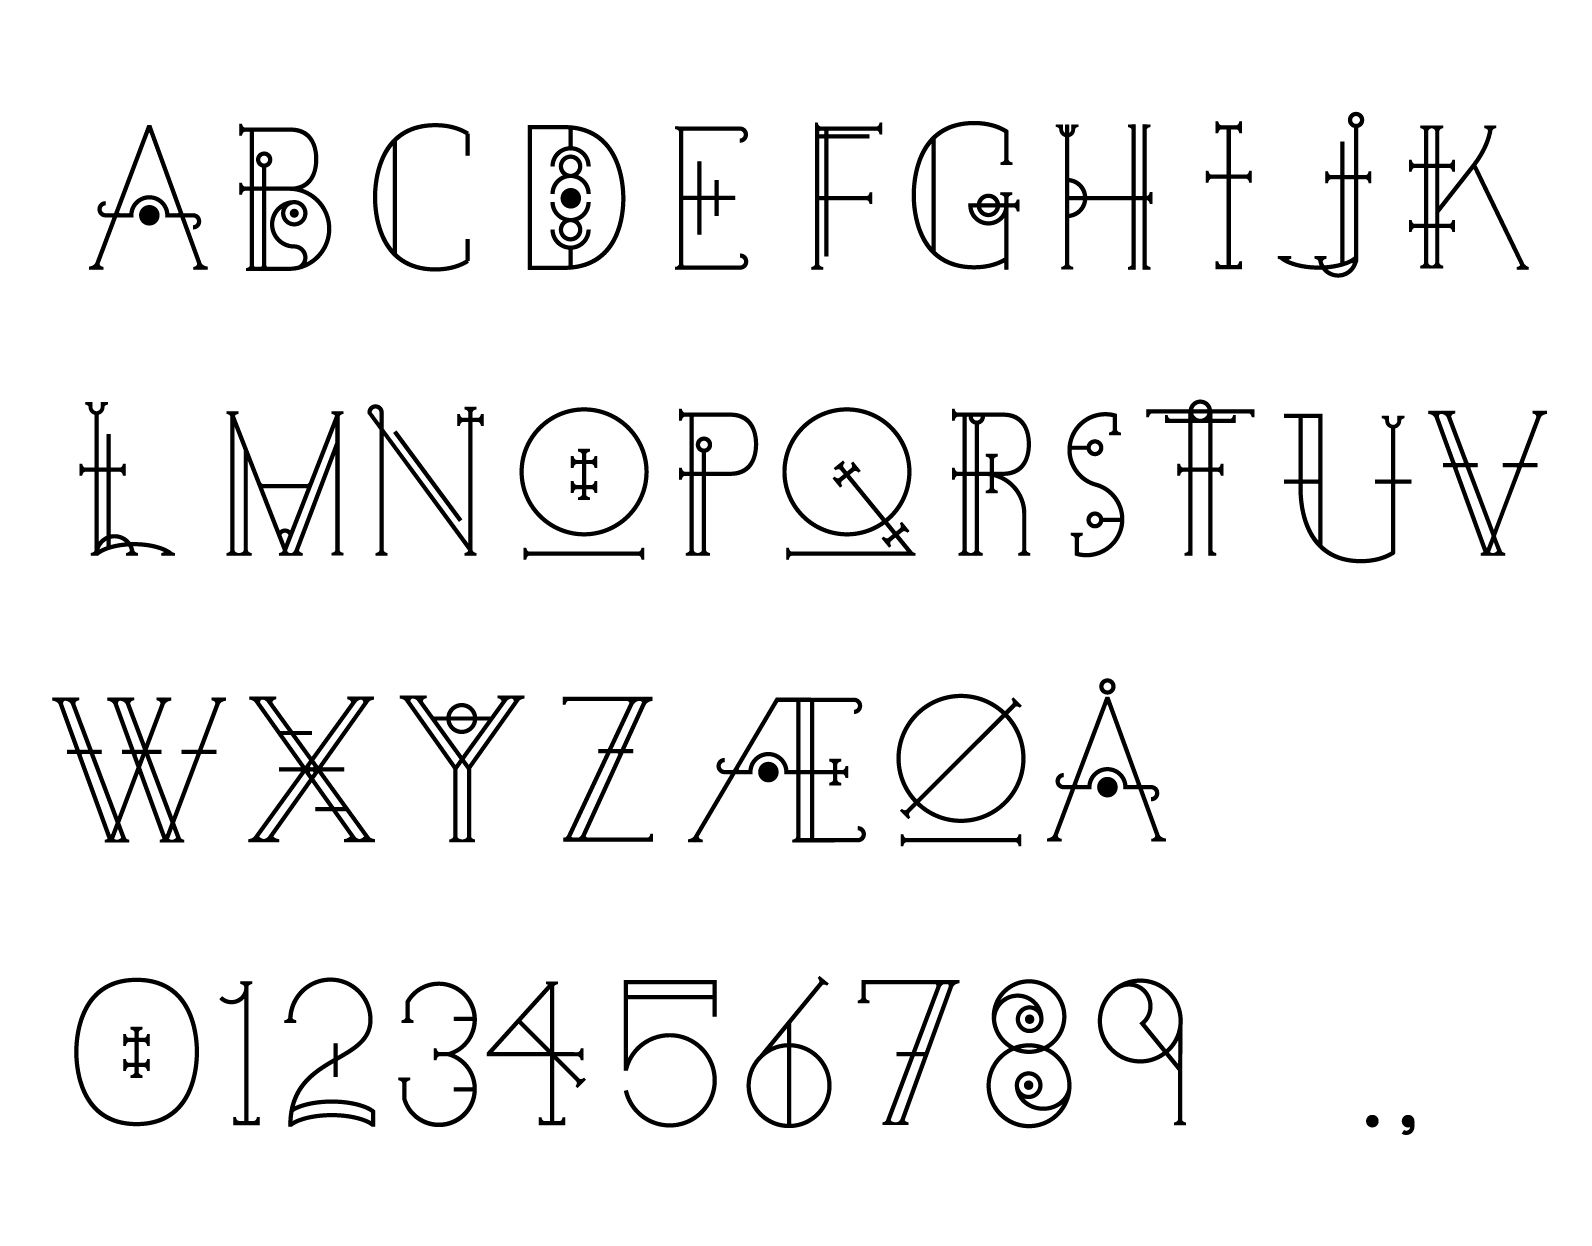 Occult Font Decided To Design A Display Font Using Occult Symbols